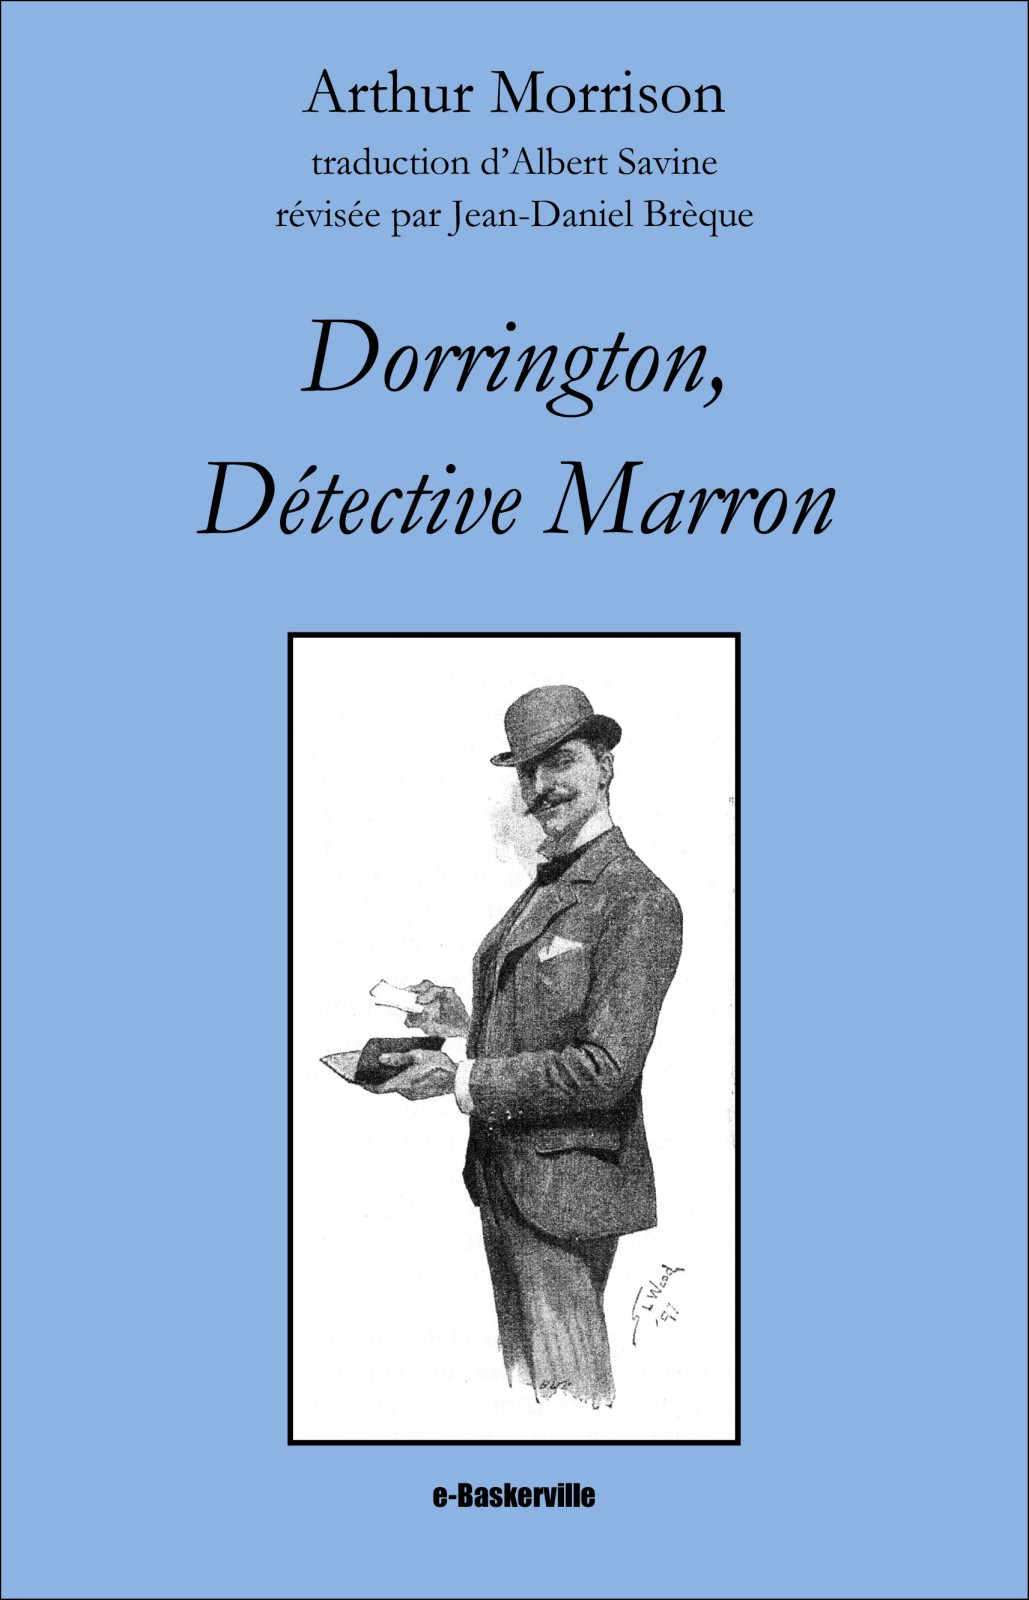 Dorrington, détective marron